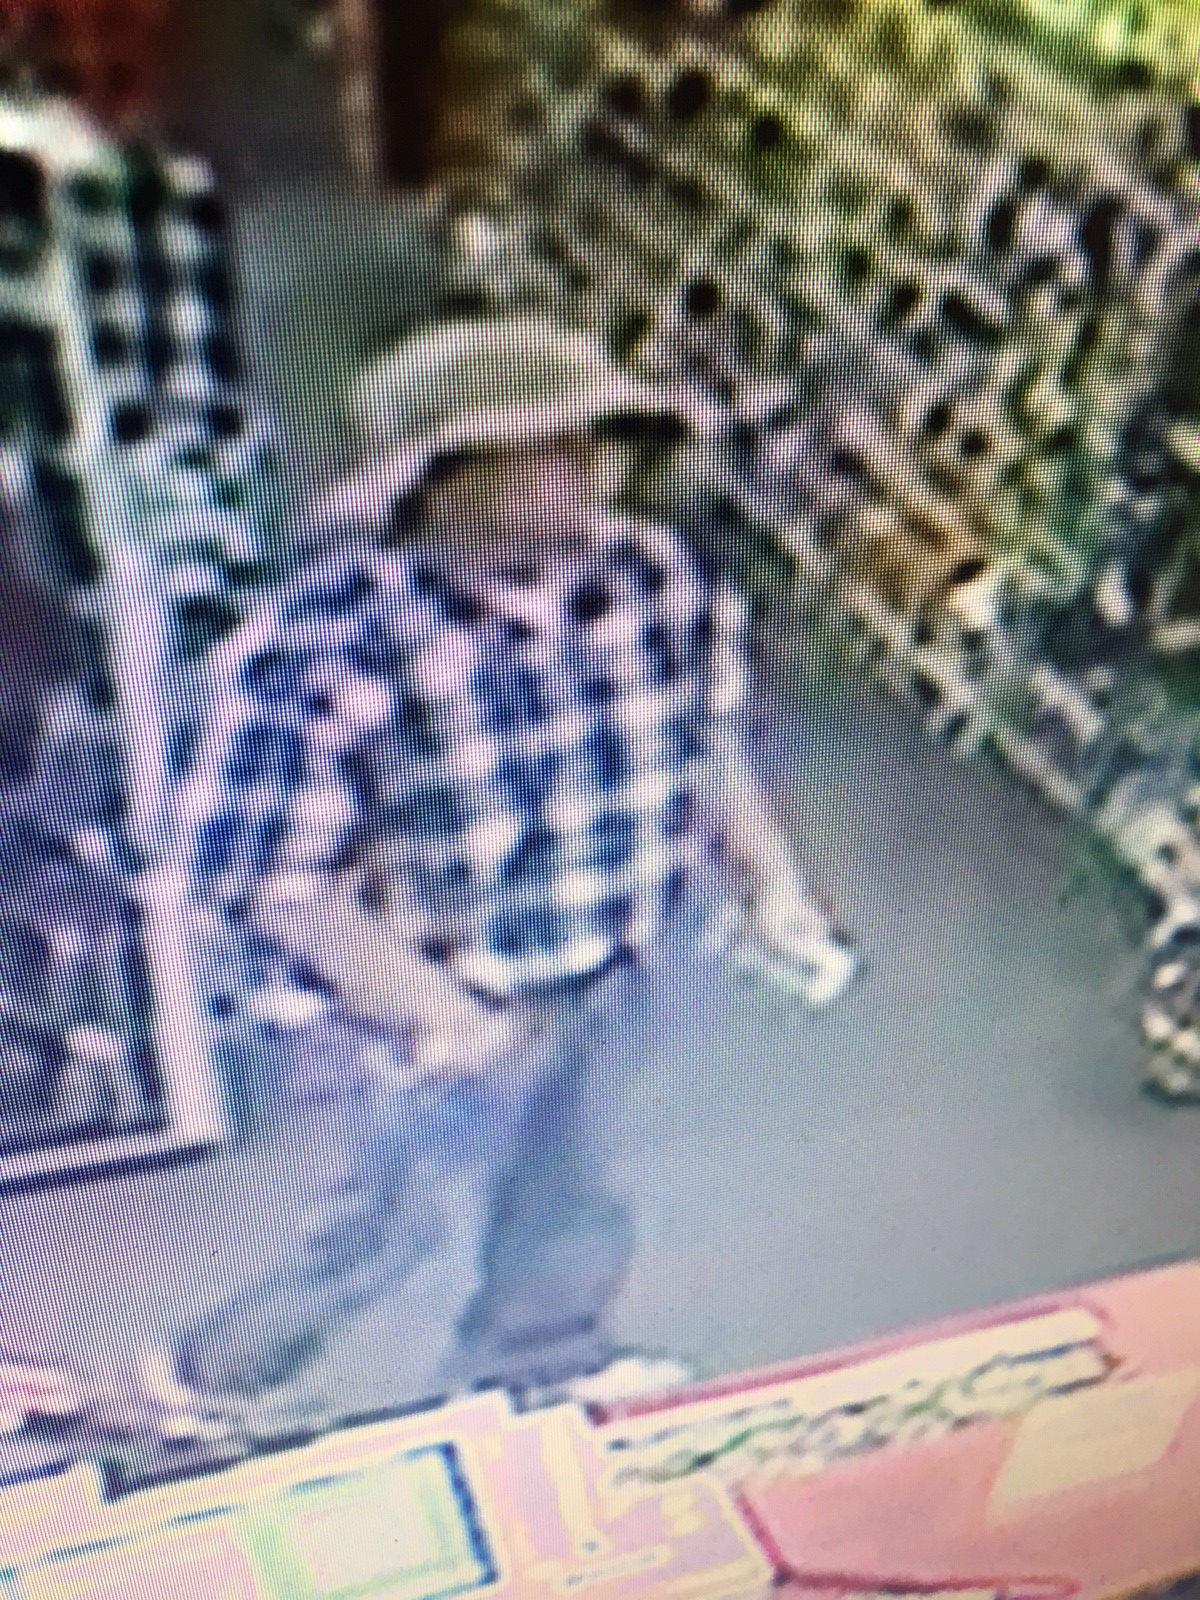 mpd searching for suspect in cvs robbery local news